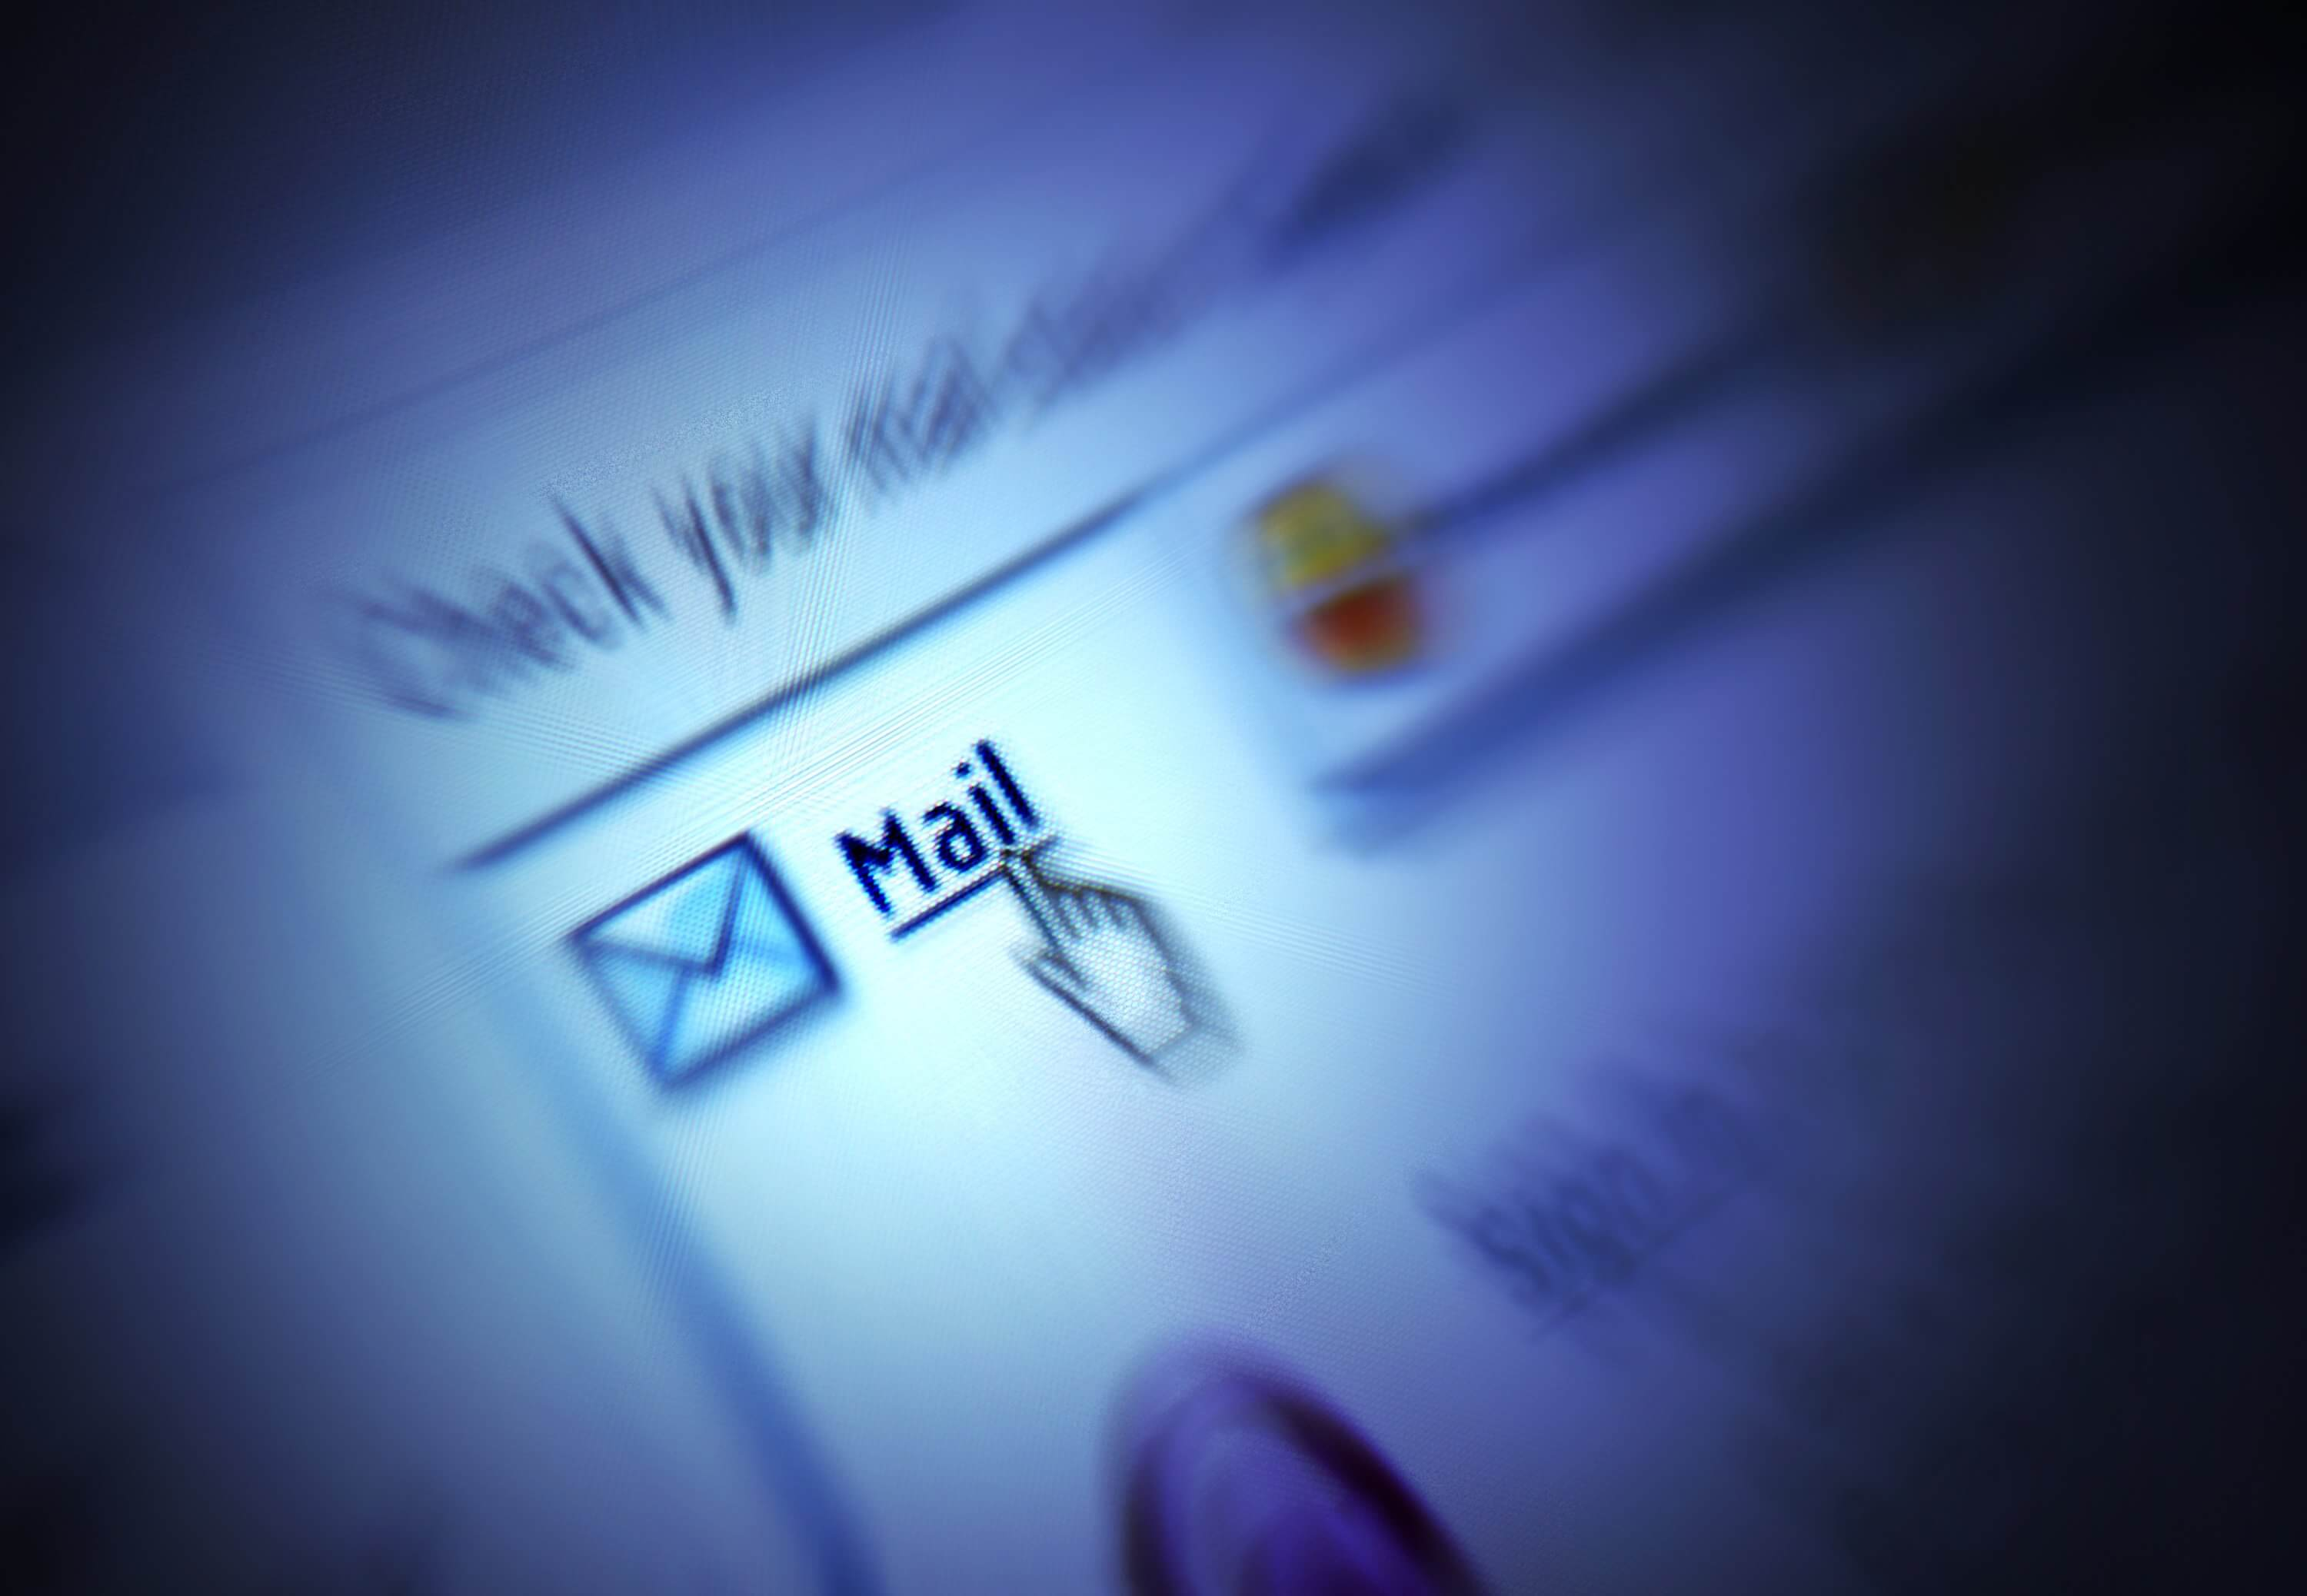 An image with blurred edges and a mouse clicking on Mail to go to an email inbox